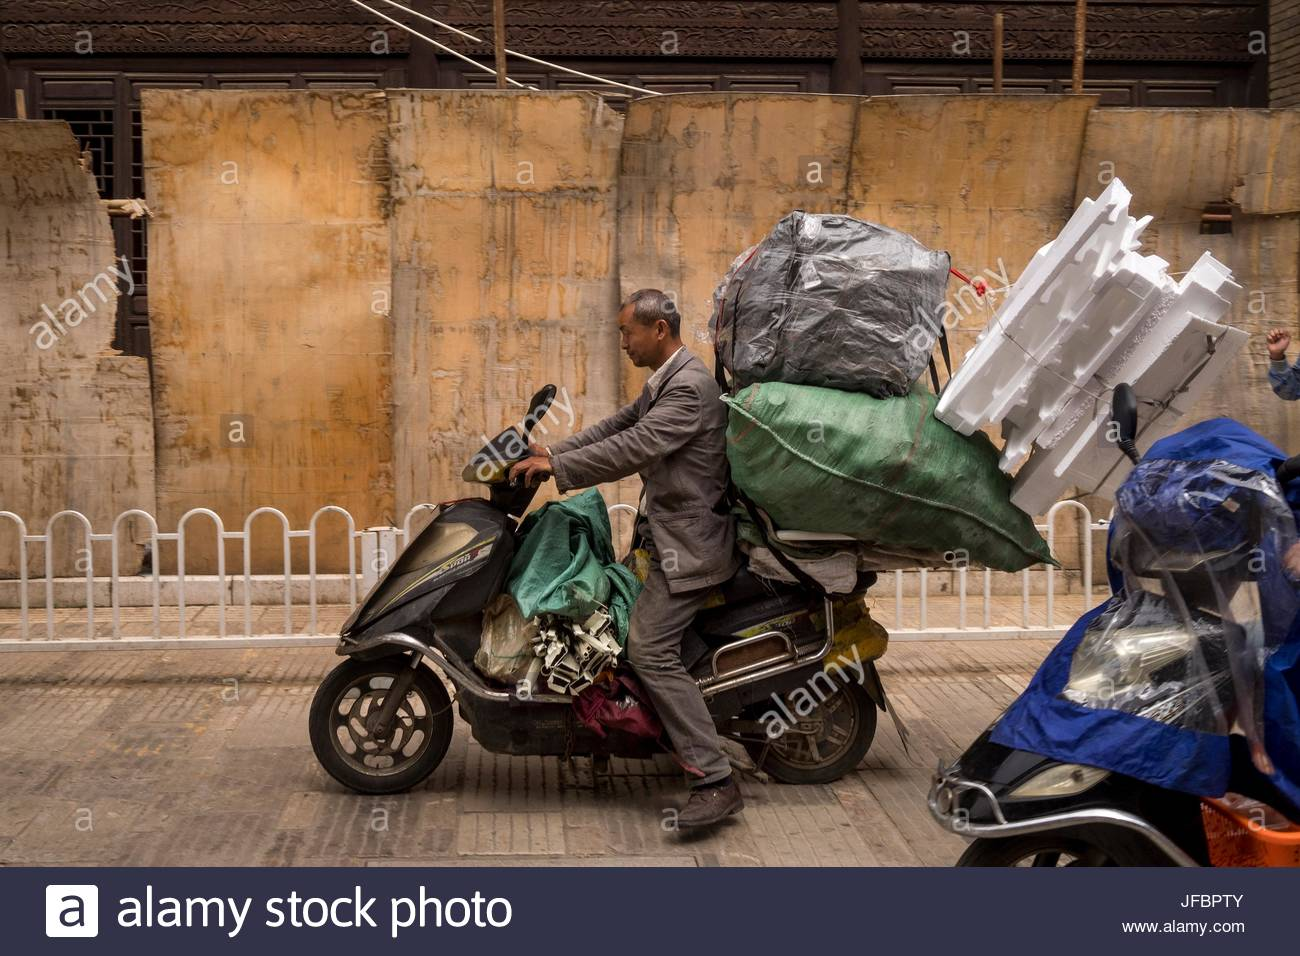 A man carries goods on his motor scooter past boarded up buildings on Guanghua Street. - Stock Image